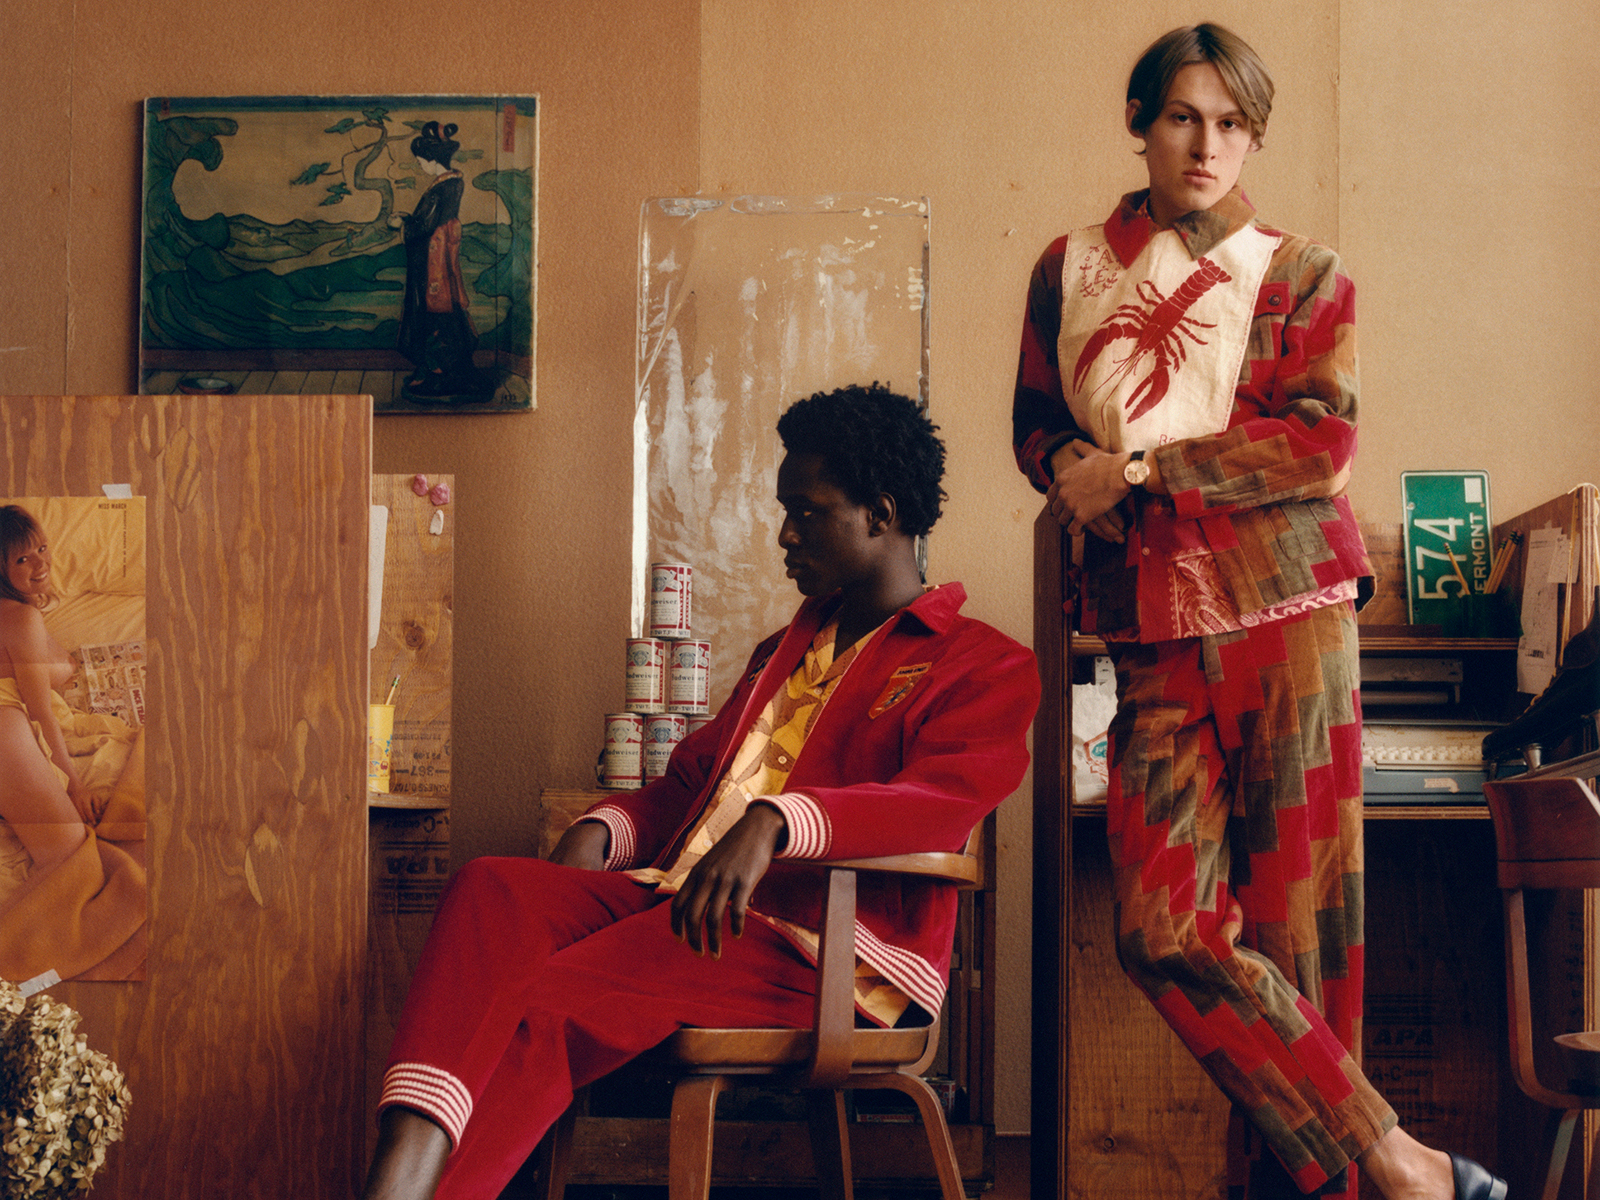 Two men model red quilted suits